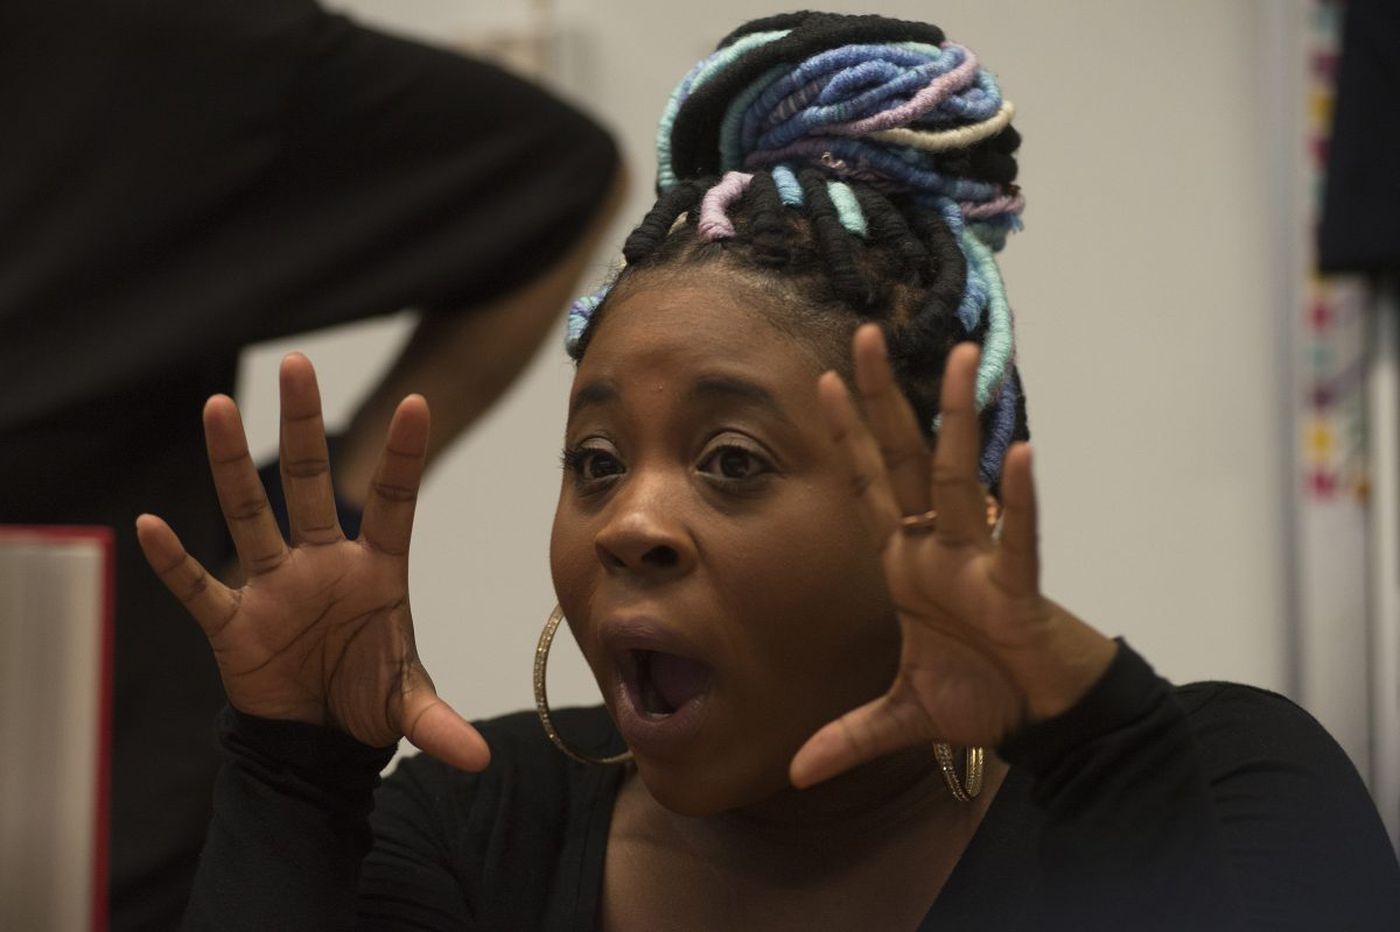 A lesson in black liberation for Philly students